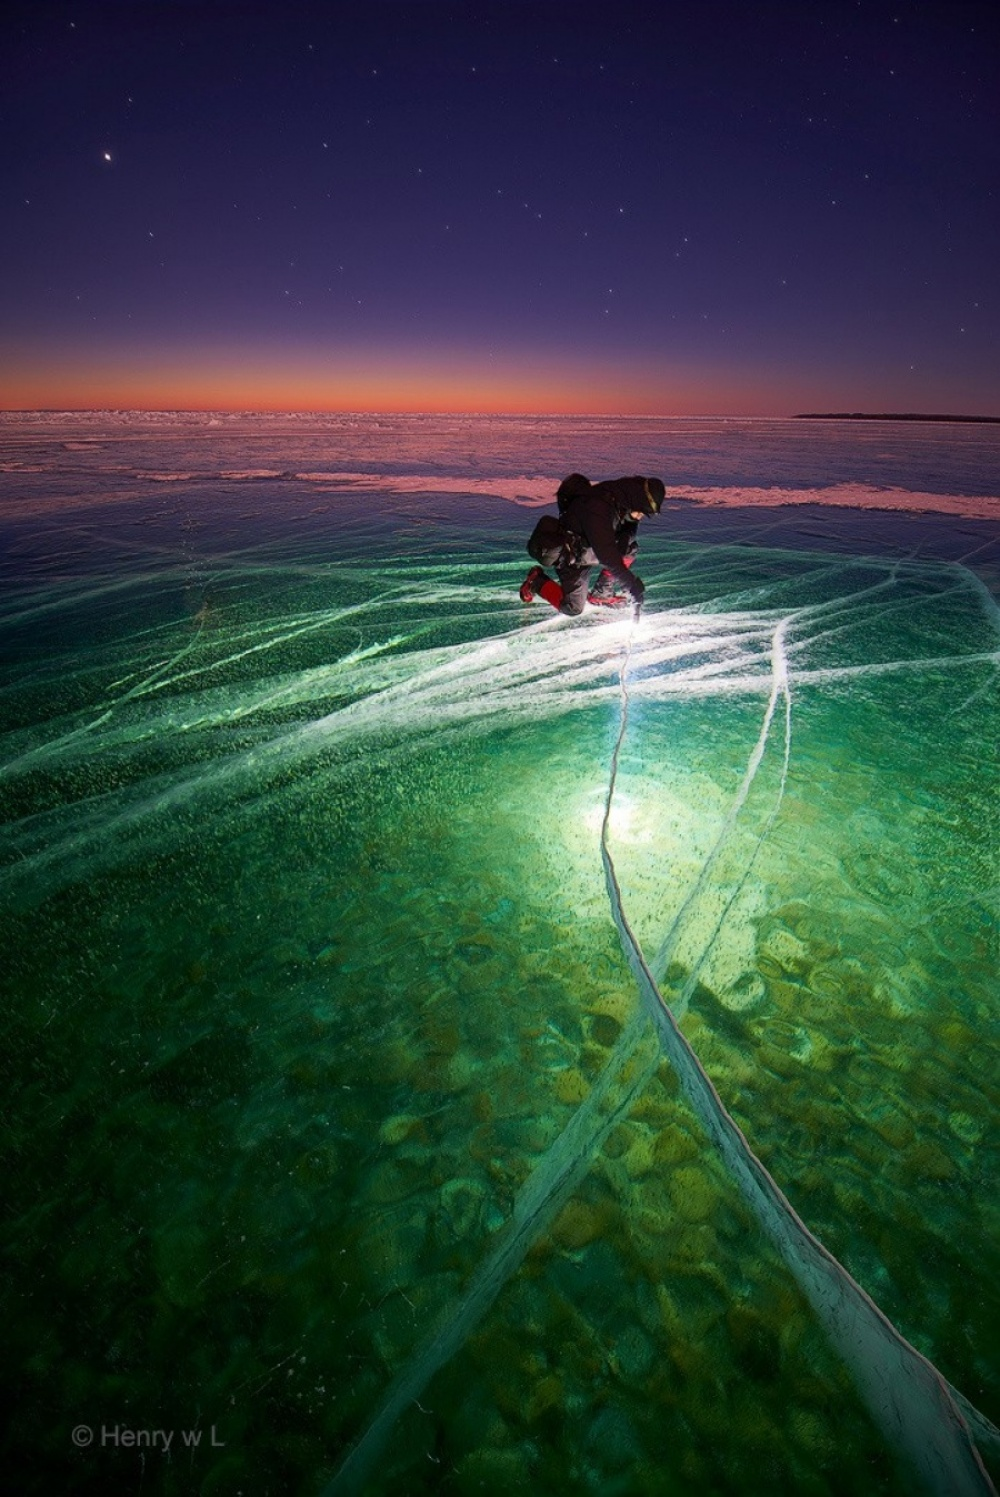 The 100 best photographs ever taken without photoshop - Man with Flashlight on Ice creates Beauty